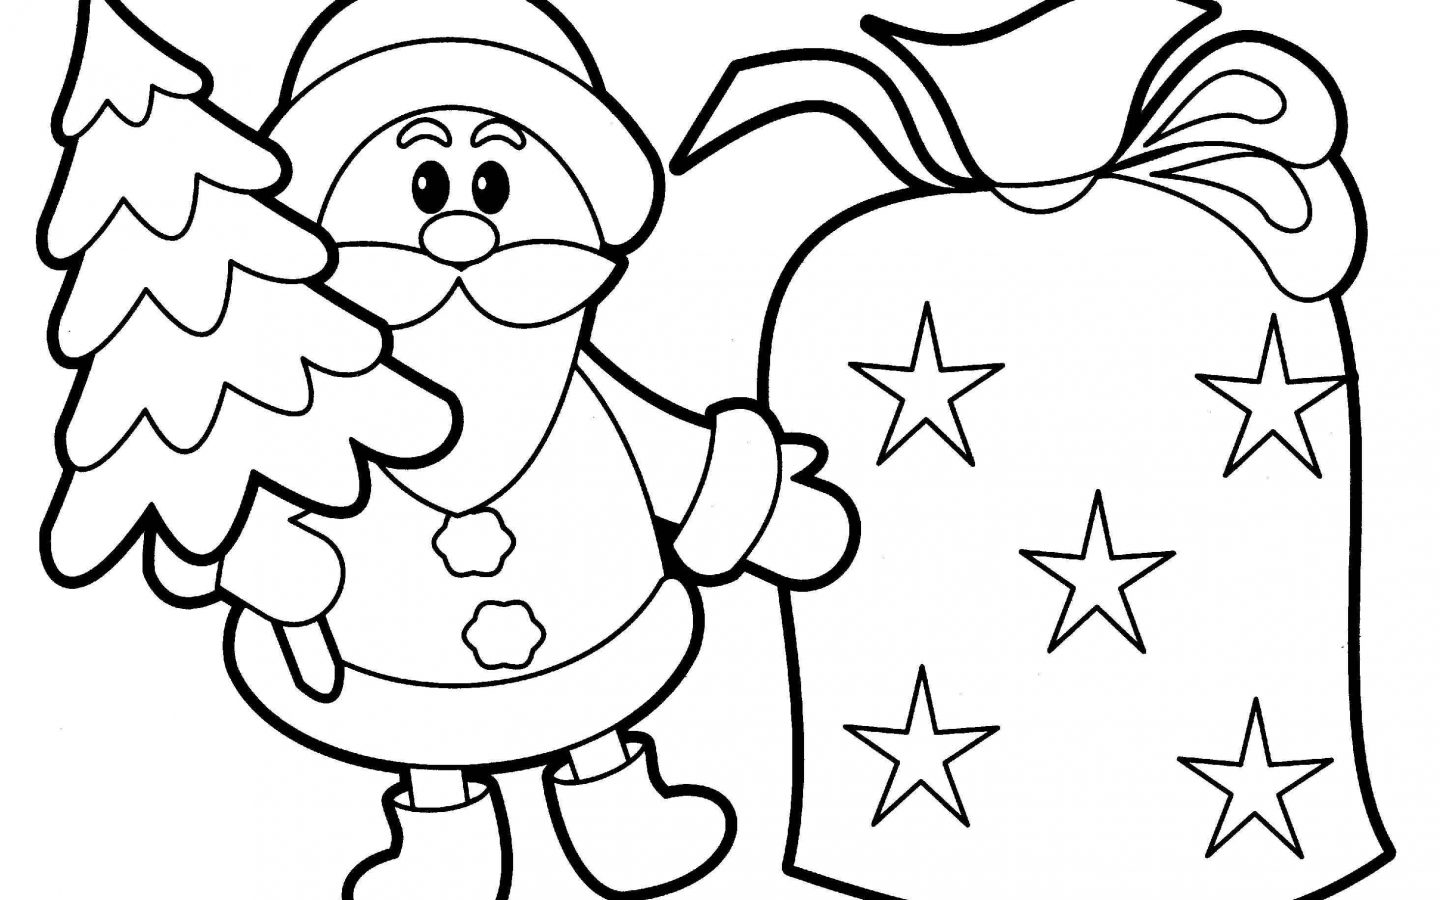 1440x900 Free Coloring Pages Toddler Many Interesting Printable Sheets